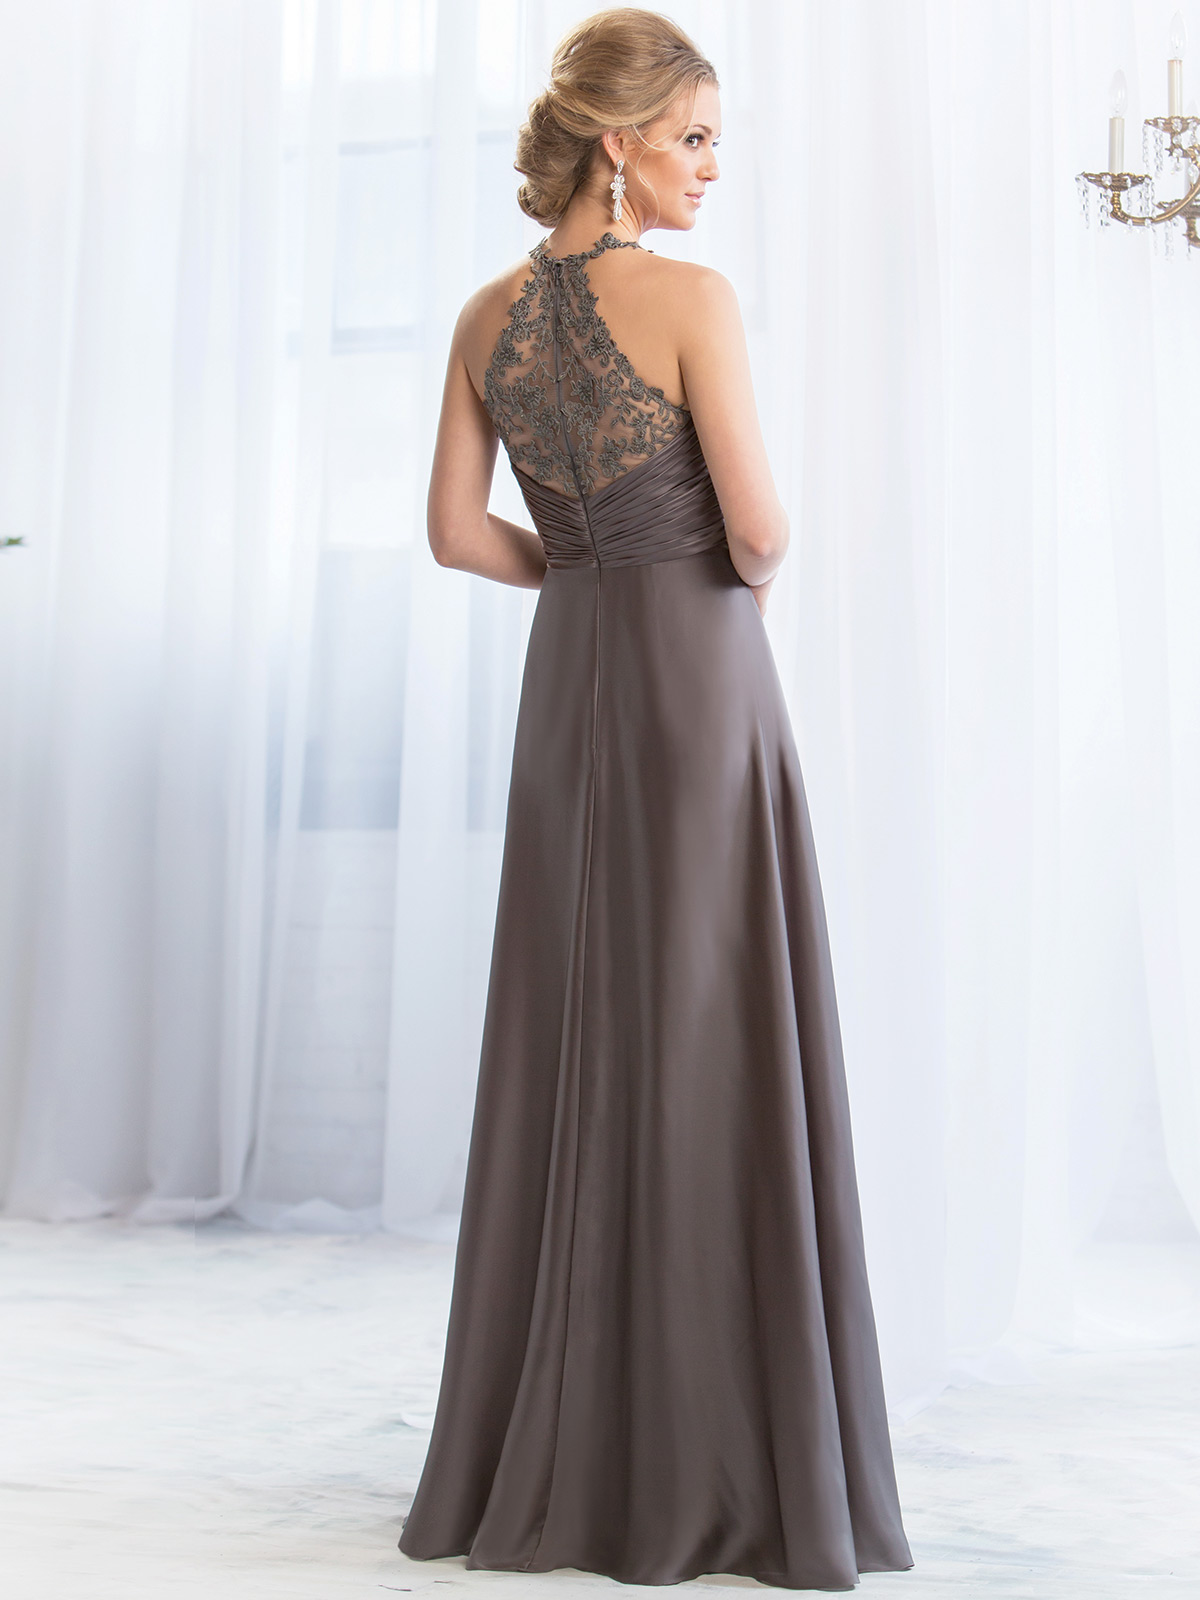 Belsoie bridesmaid dress l164069 dimitradesigns fabulous satin chiffon floor length bridesmaid dress belsoie l164069 ombrellifo Choice Image